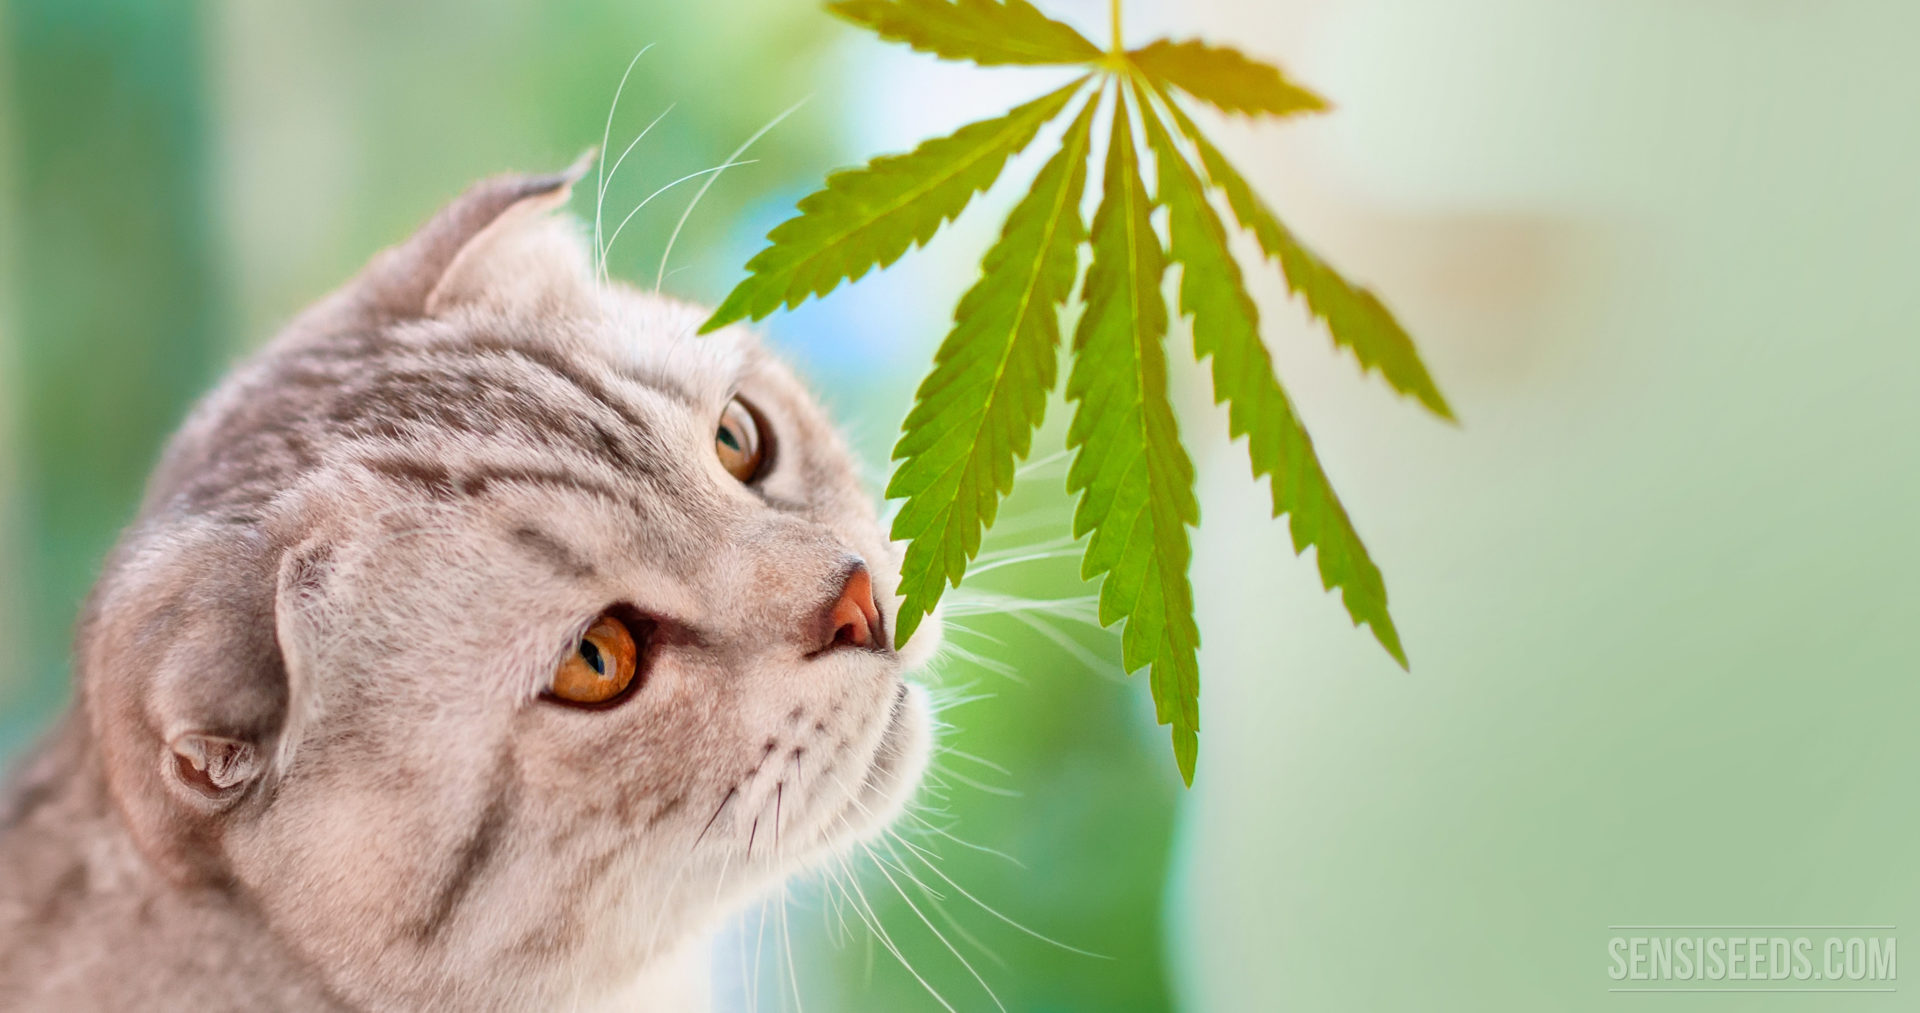 Cannabis and Animals? Yes, but with care!